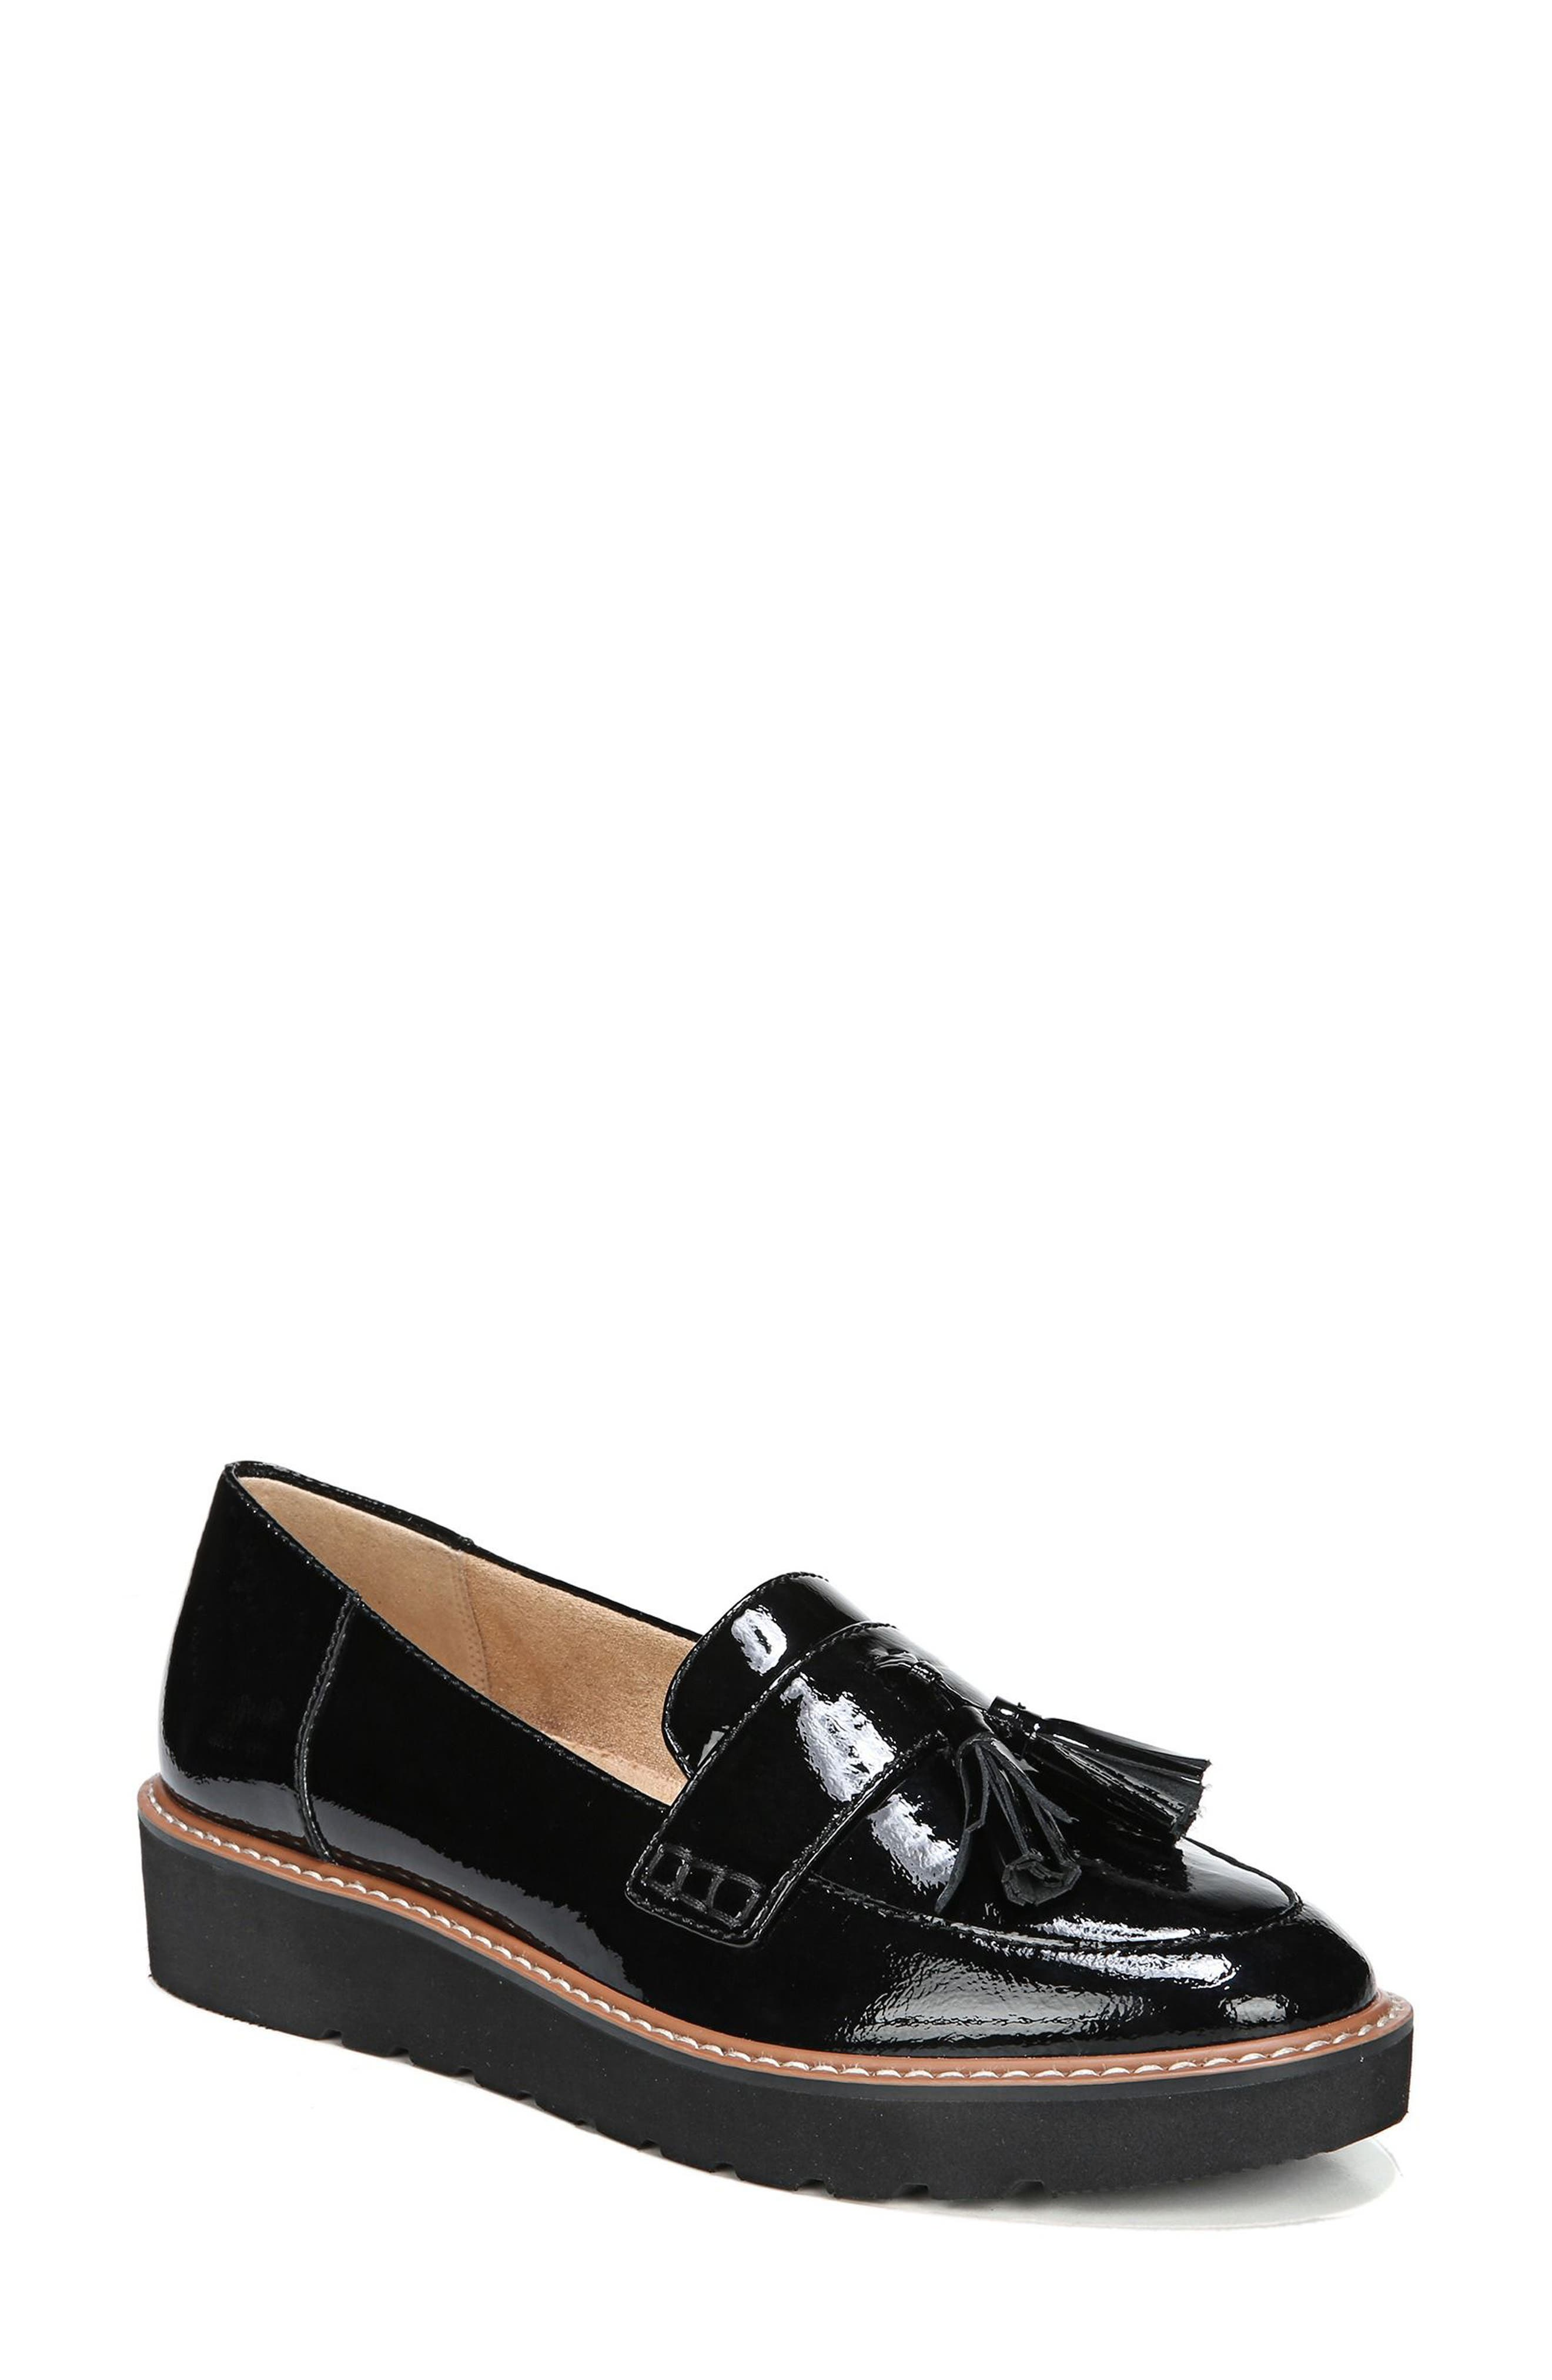 August Loafer,                             Main thumbnail 1, color,                             BLACK PATENT LEATHER